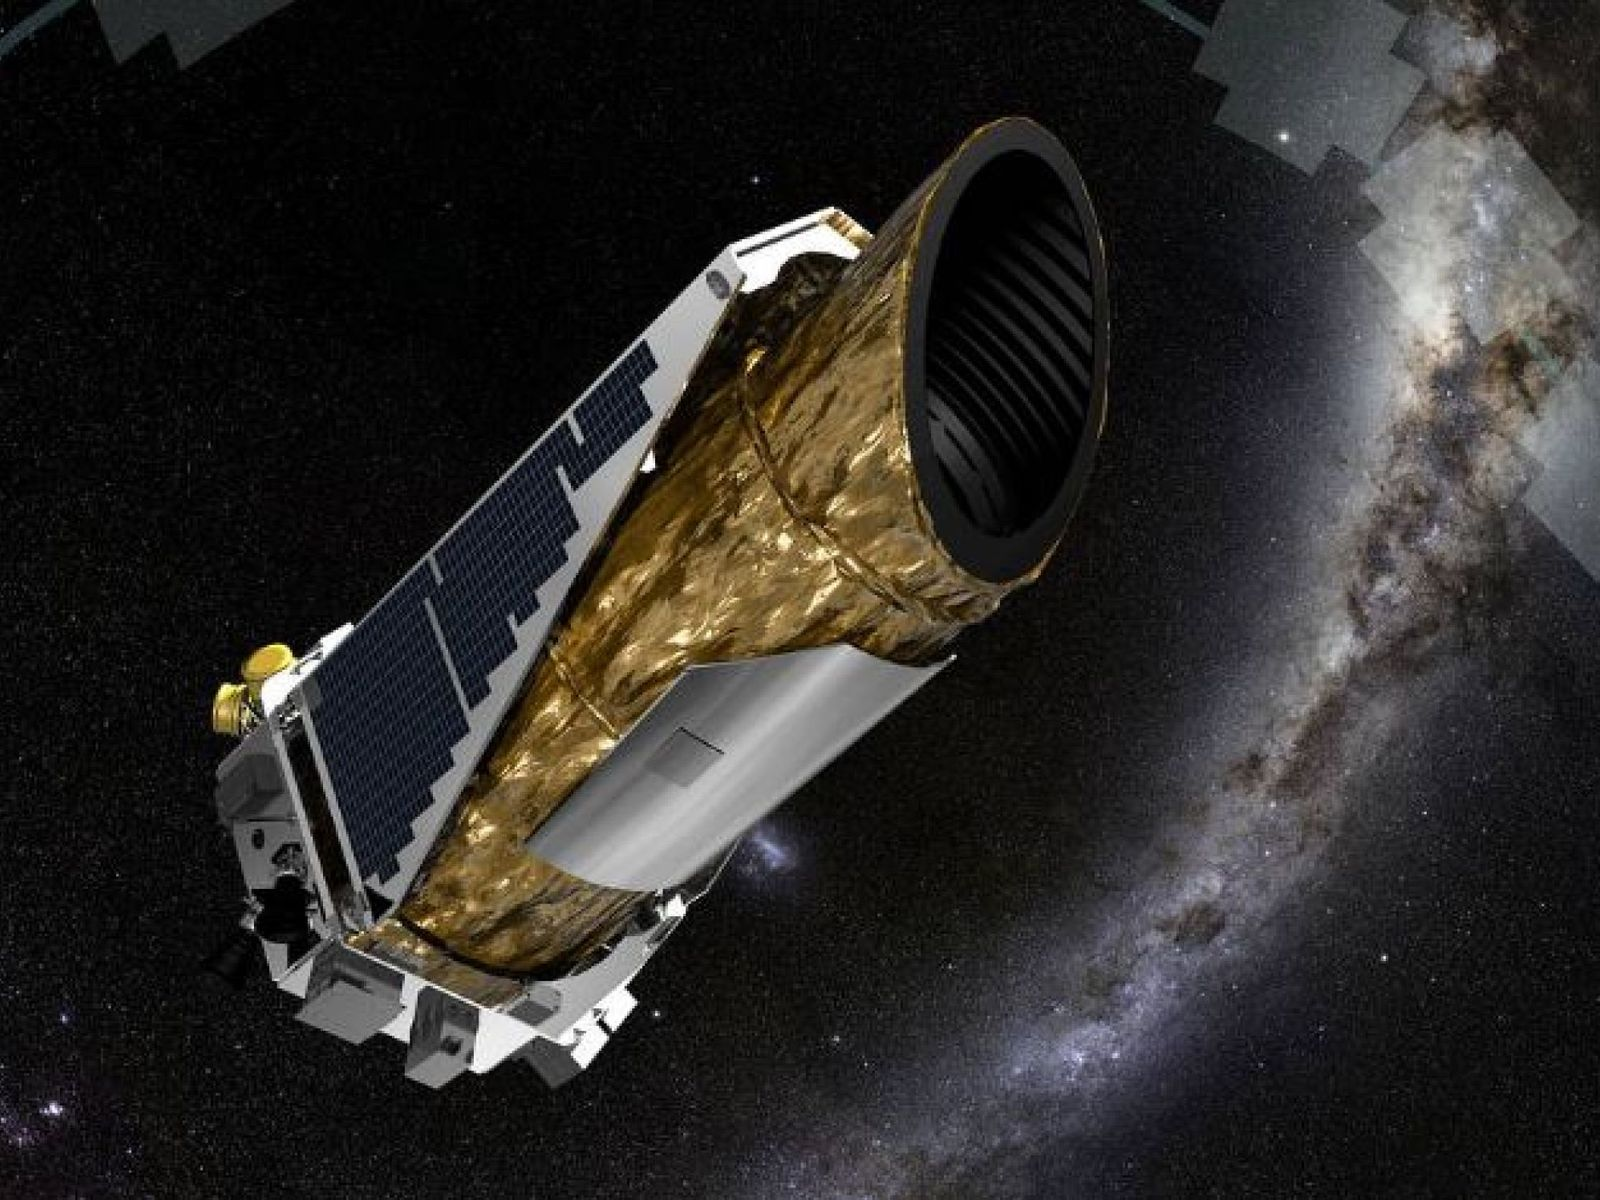 Kepler is a retired space telescope launched by NASA to discover Earthsize planets orbiting other stars Named after astronomer Johannes Kepler the spacecraft was